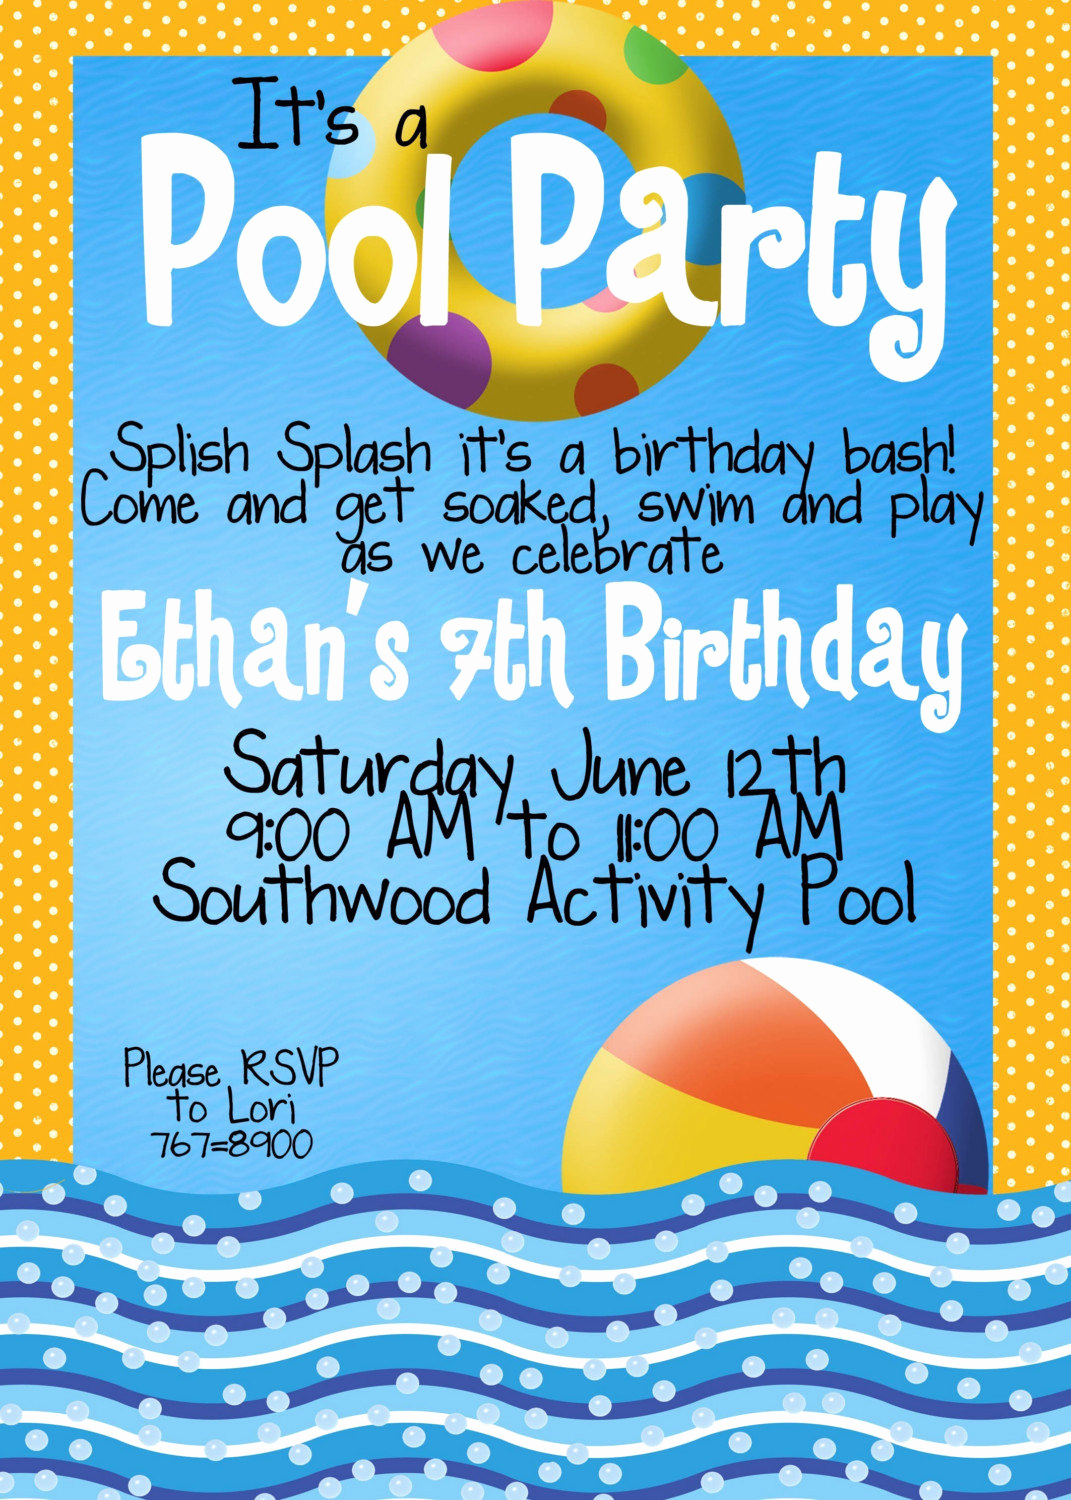 Pool Party Invites Templates New Pool Party Invitations by Magicbymarcy On Etsy